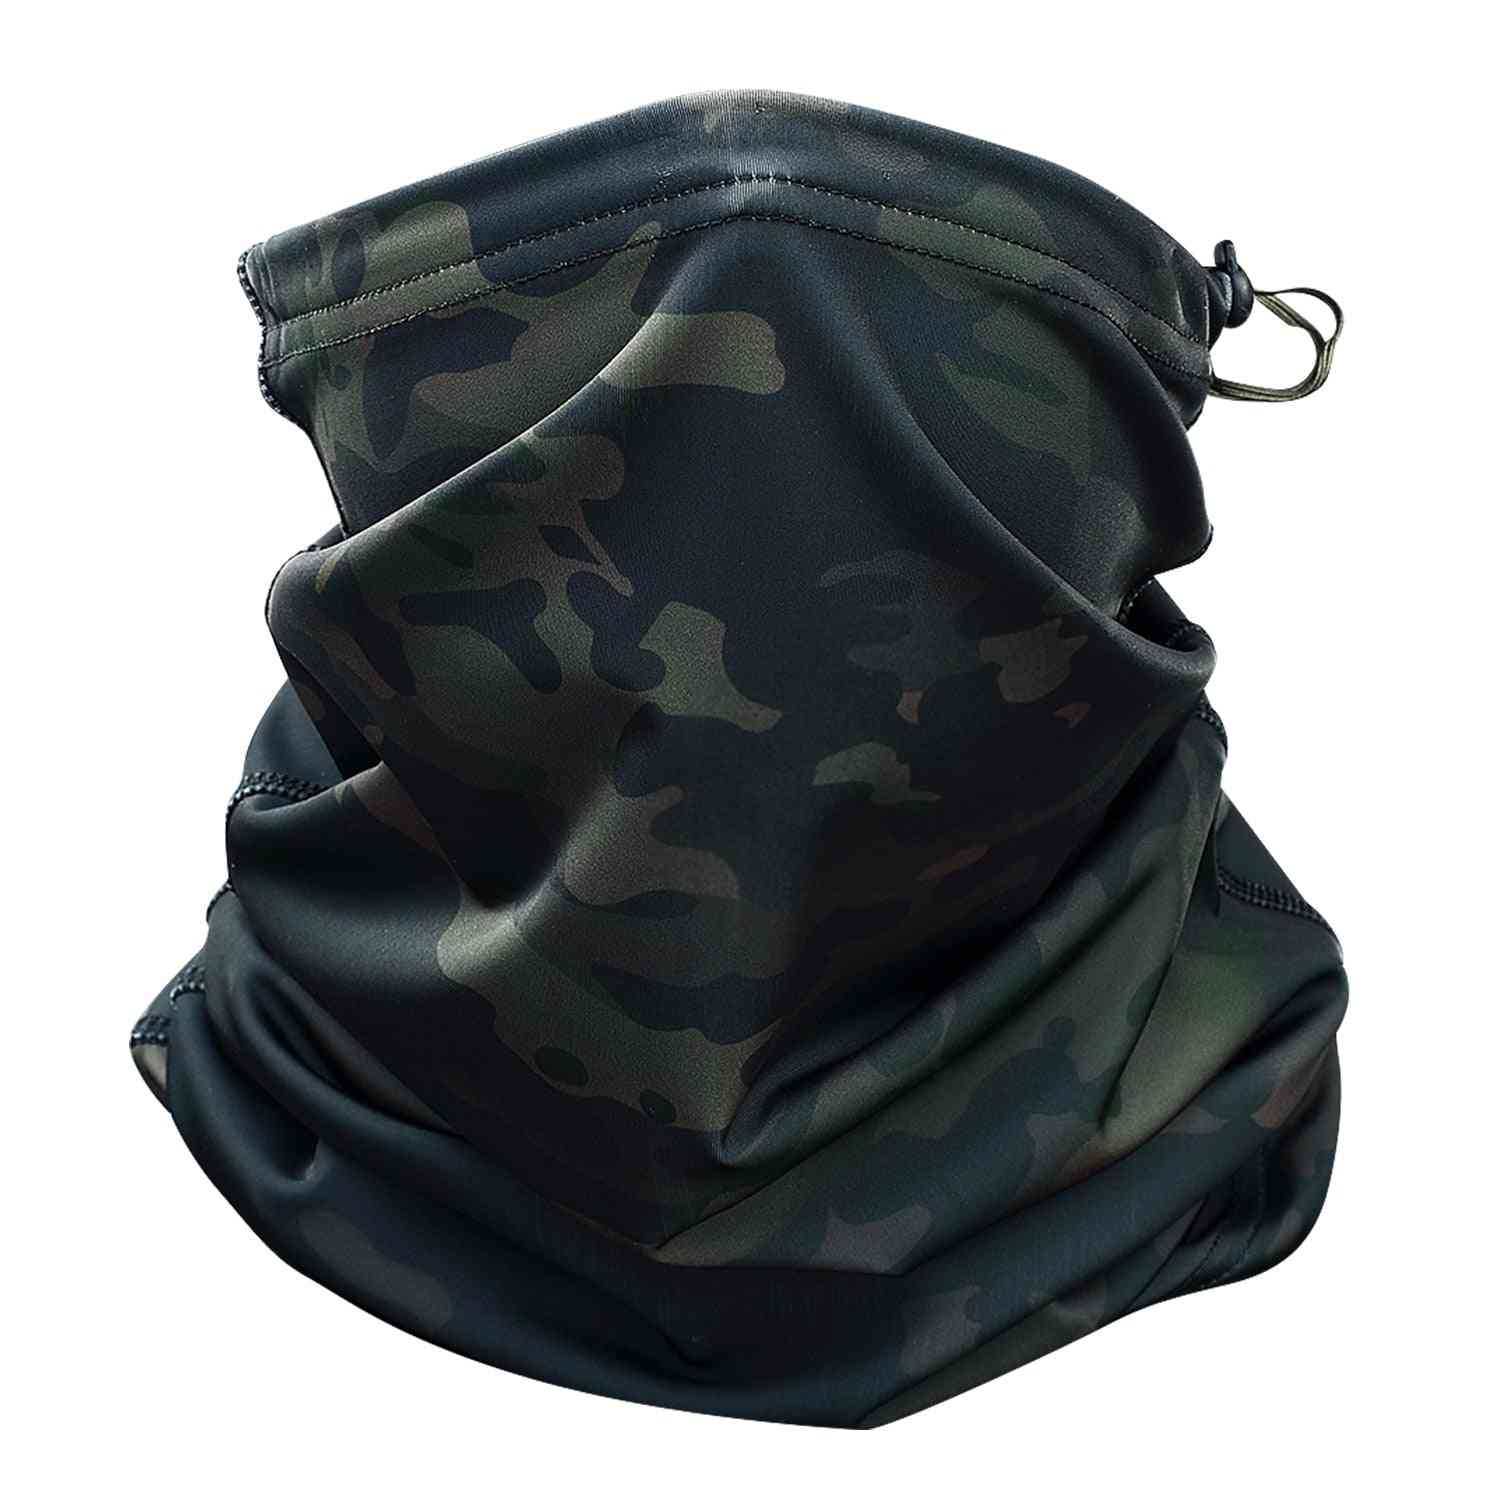 Magic Headband, Multicam Camouflage Tactical Neck Warmer For Military